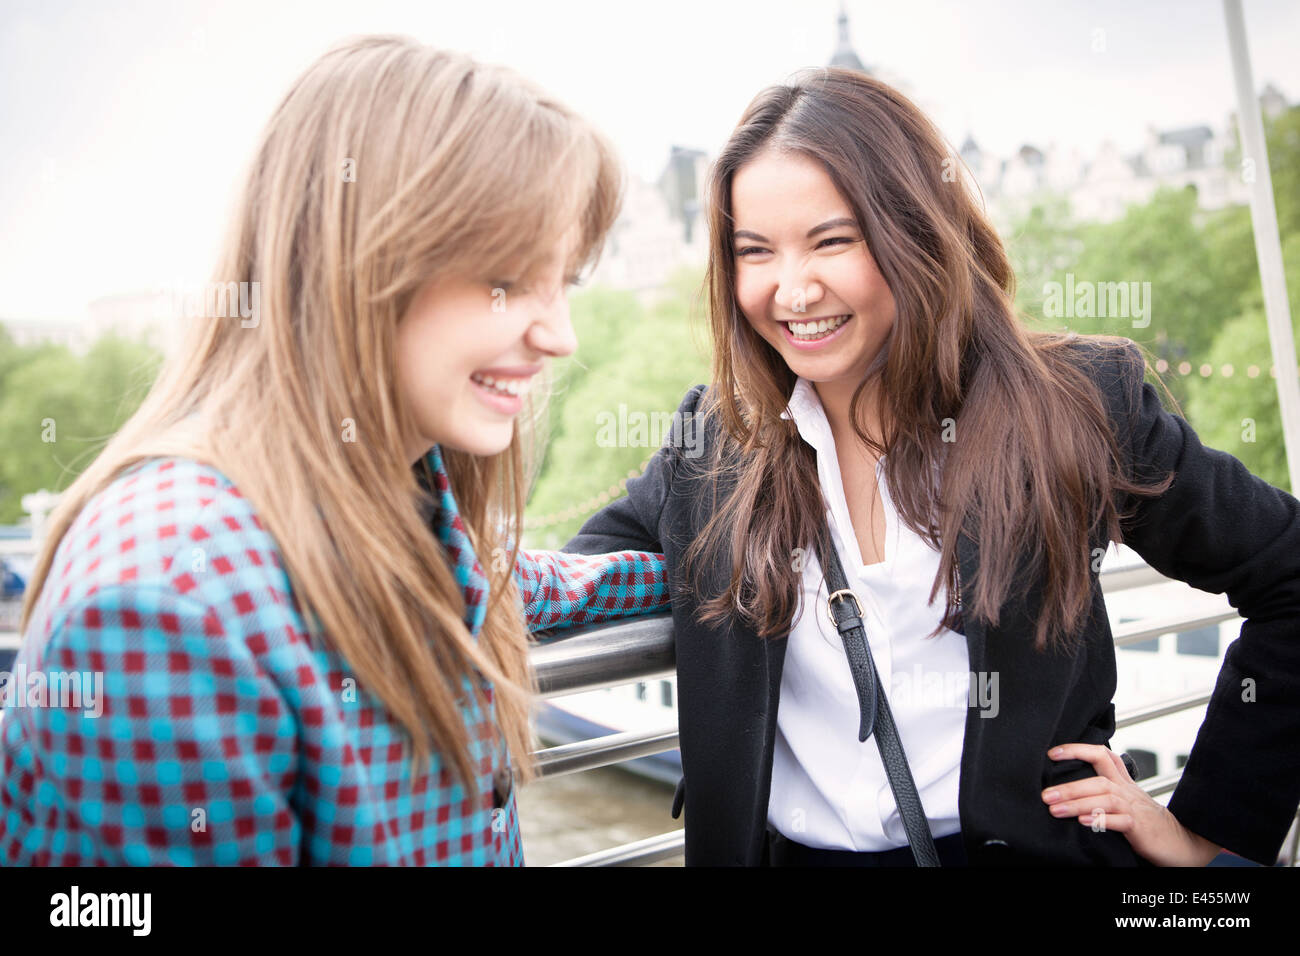 Two young female tourists giggling on Golden Jubilee footbridge, London, UK Stock Photo